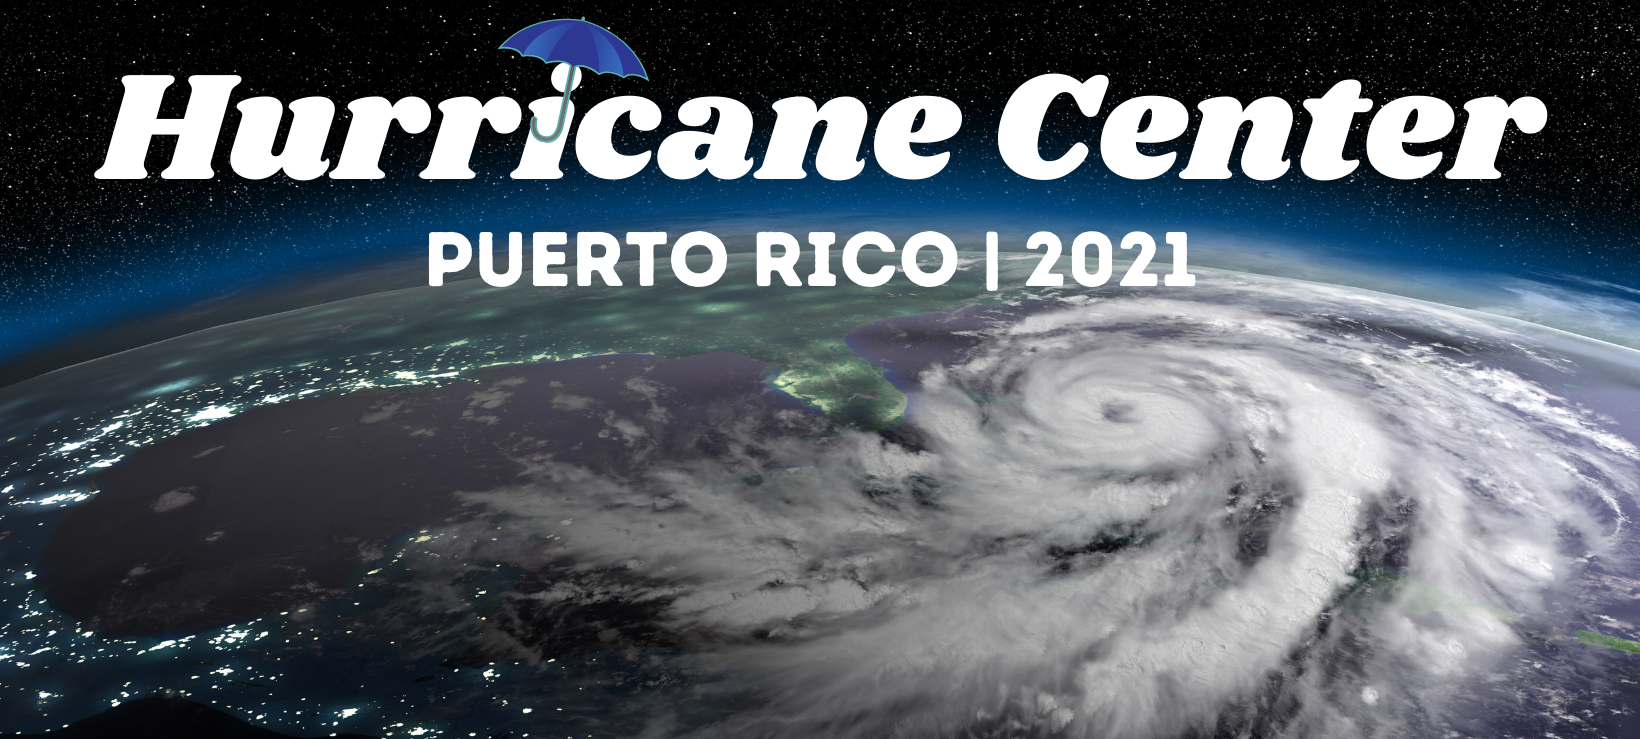 Hurricane Center PR